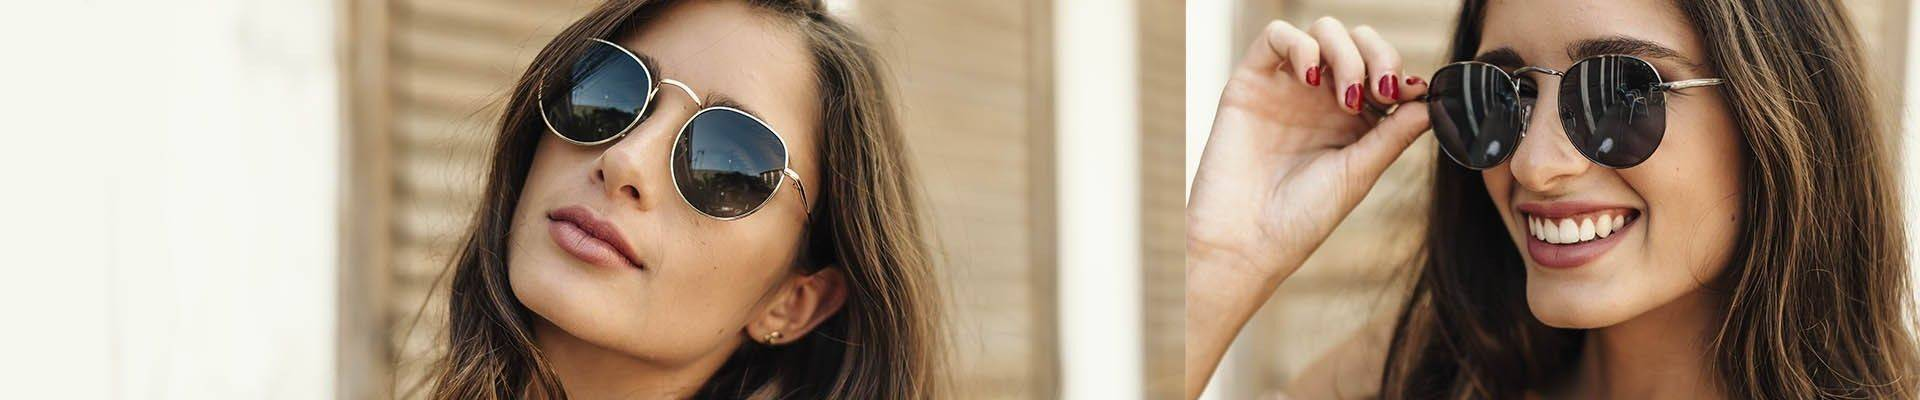 Retro style sunglasses inspired by the 60's from Charly Therapy